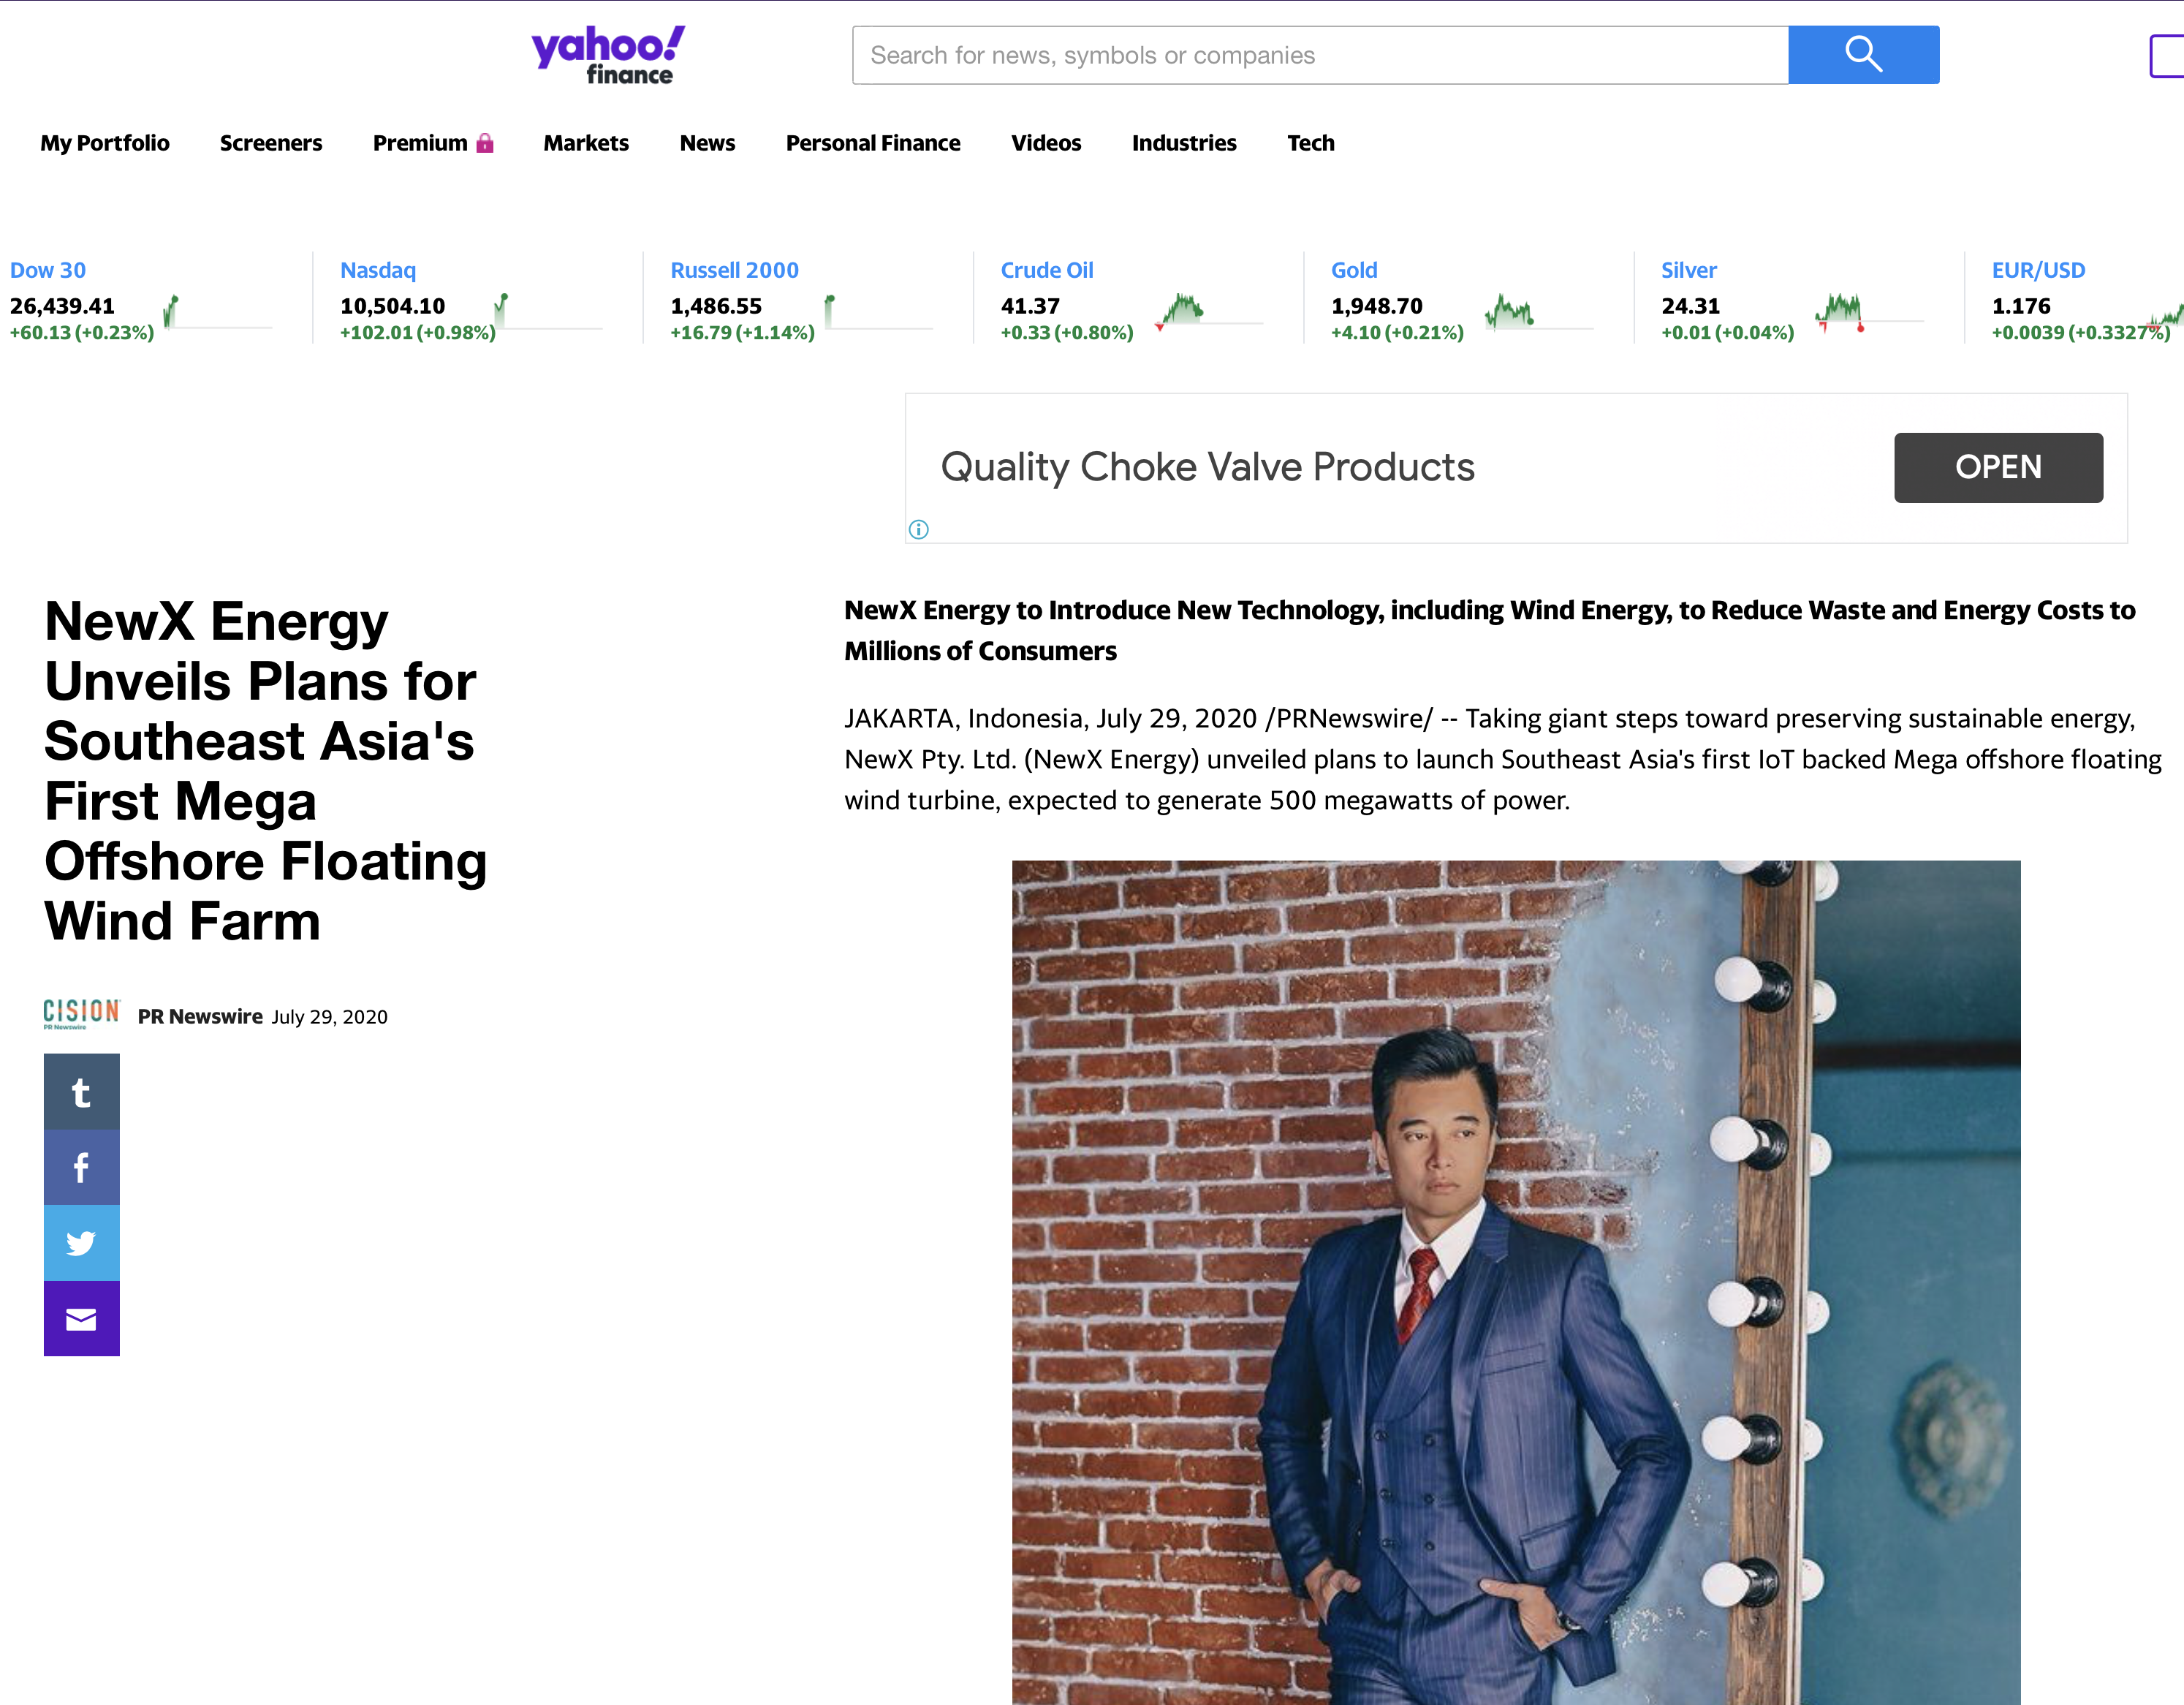 Yahoo Finance – NewX Energy Unveils Plans for Southeast Asia's First Mega Offshore Floating Wind Farm